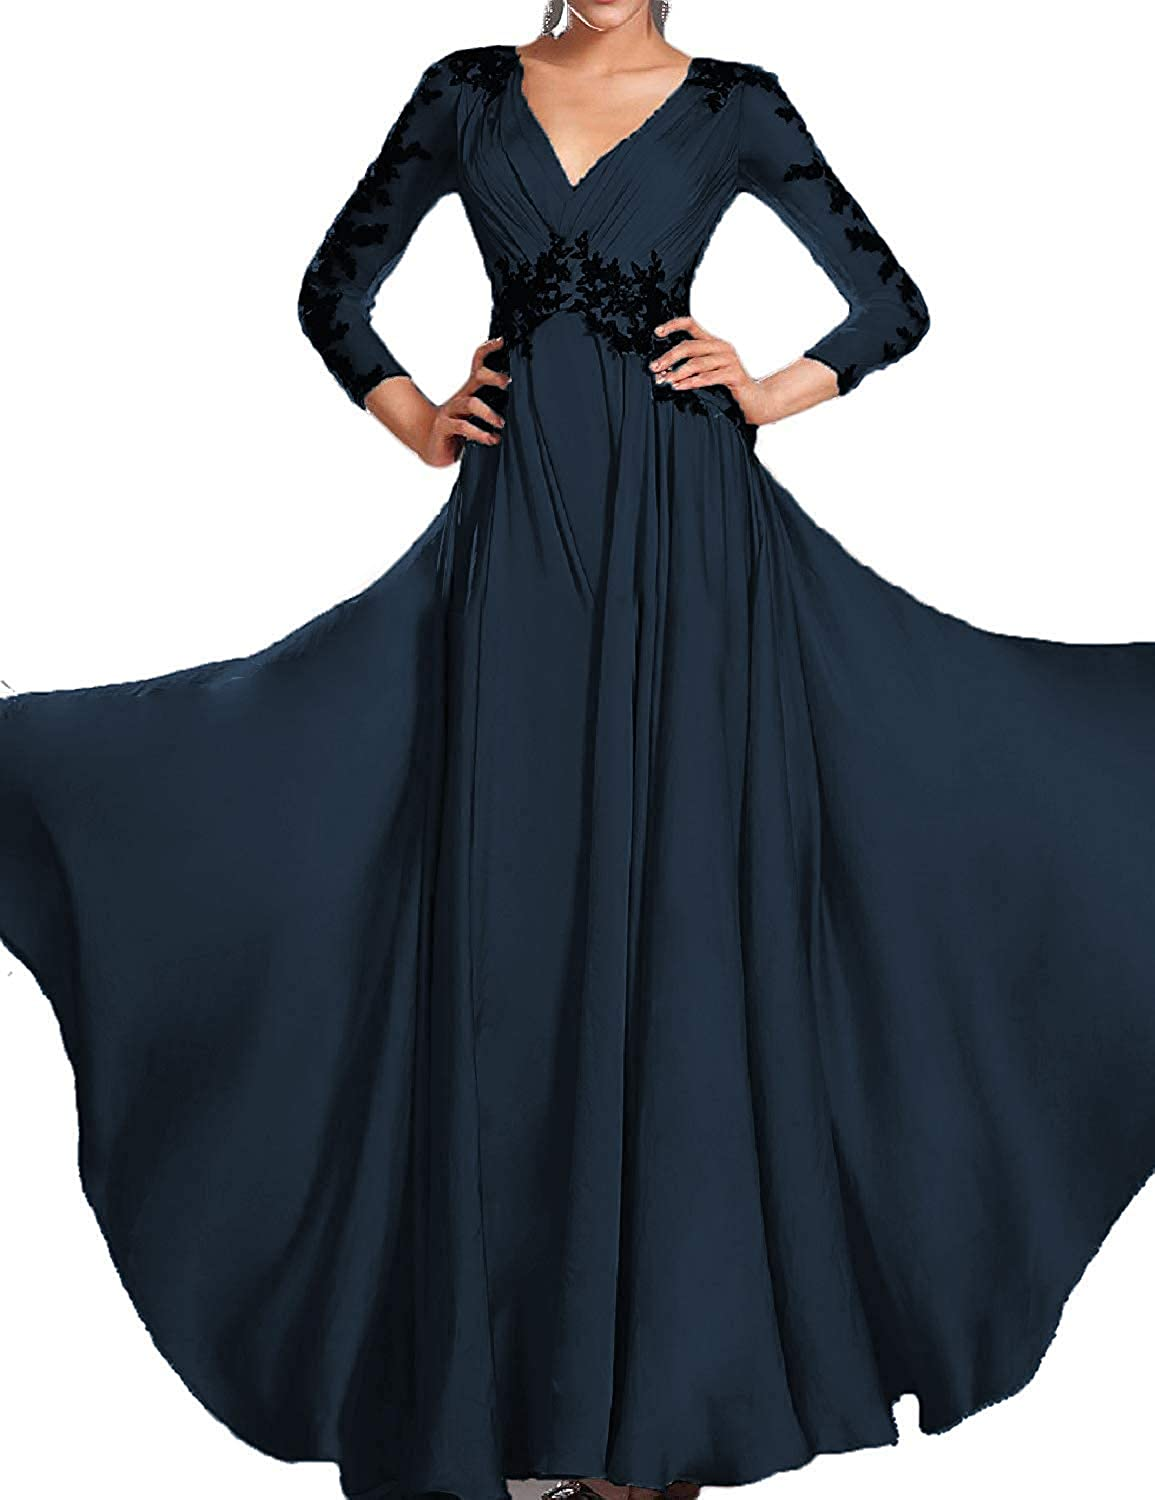 Dark Navy ASBridal Prom Dresses with Long Sleeves Formal Evening Gowns for Women Plus Size Prom Gown Lace Evening Dress